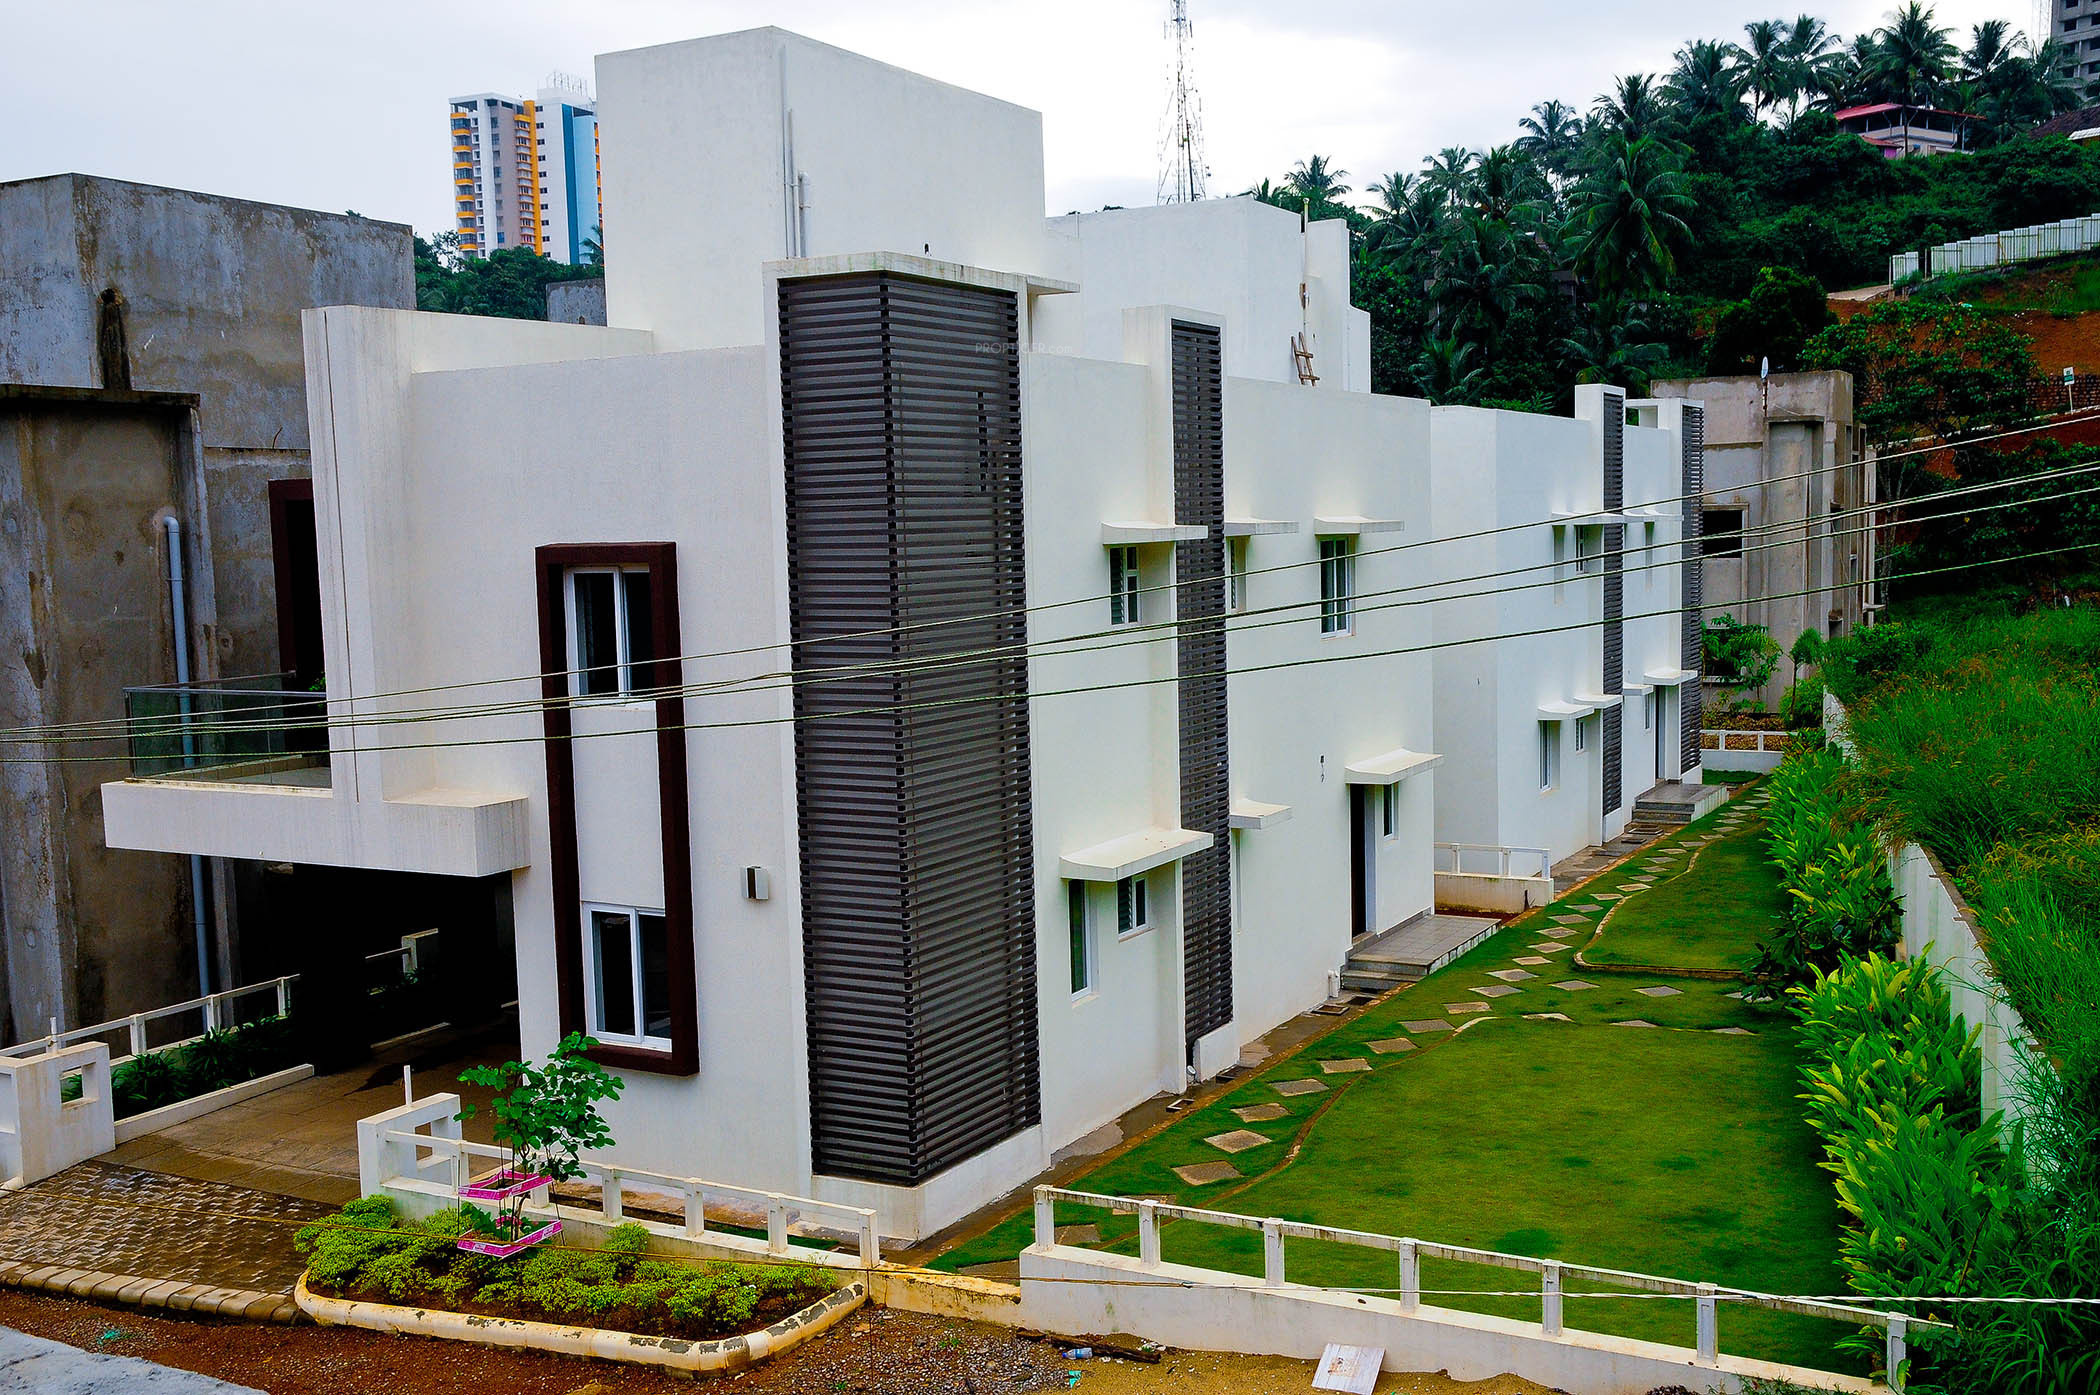 Charmant Images For Elevation Of Pooja Gardens Of Delight